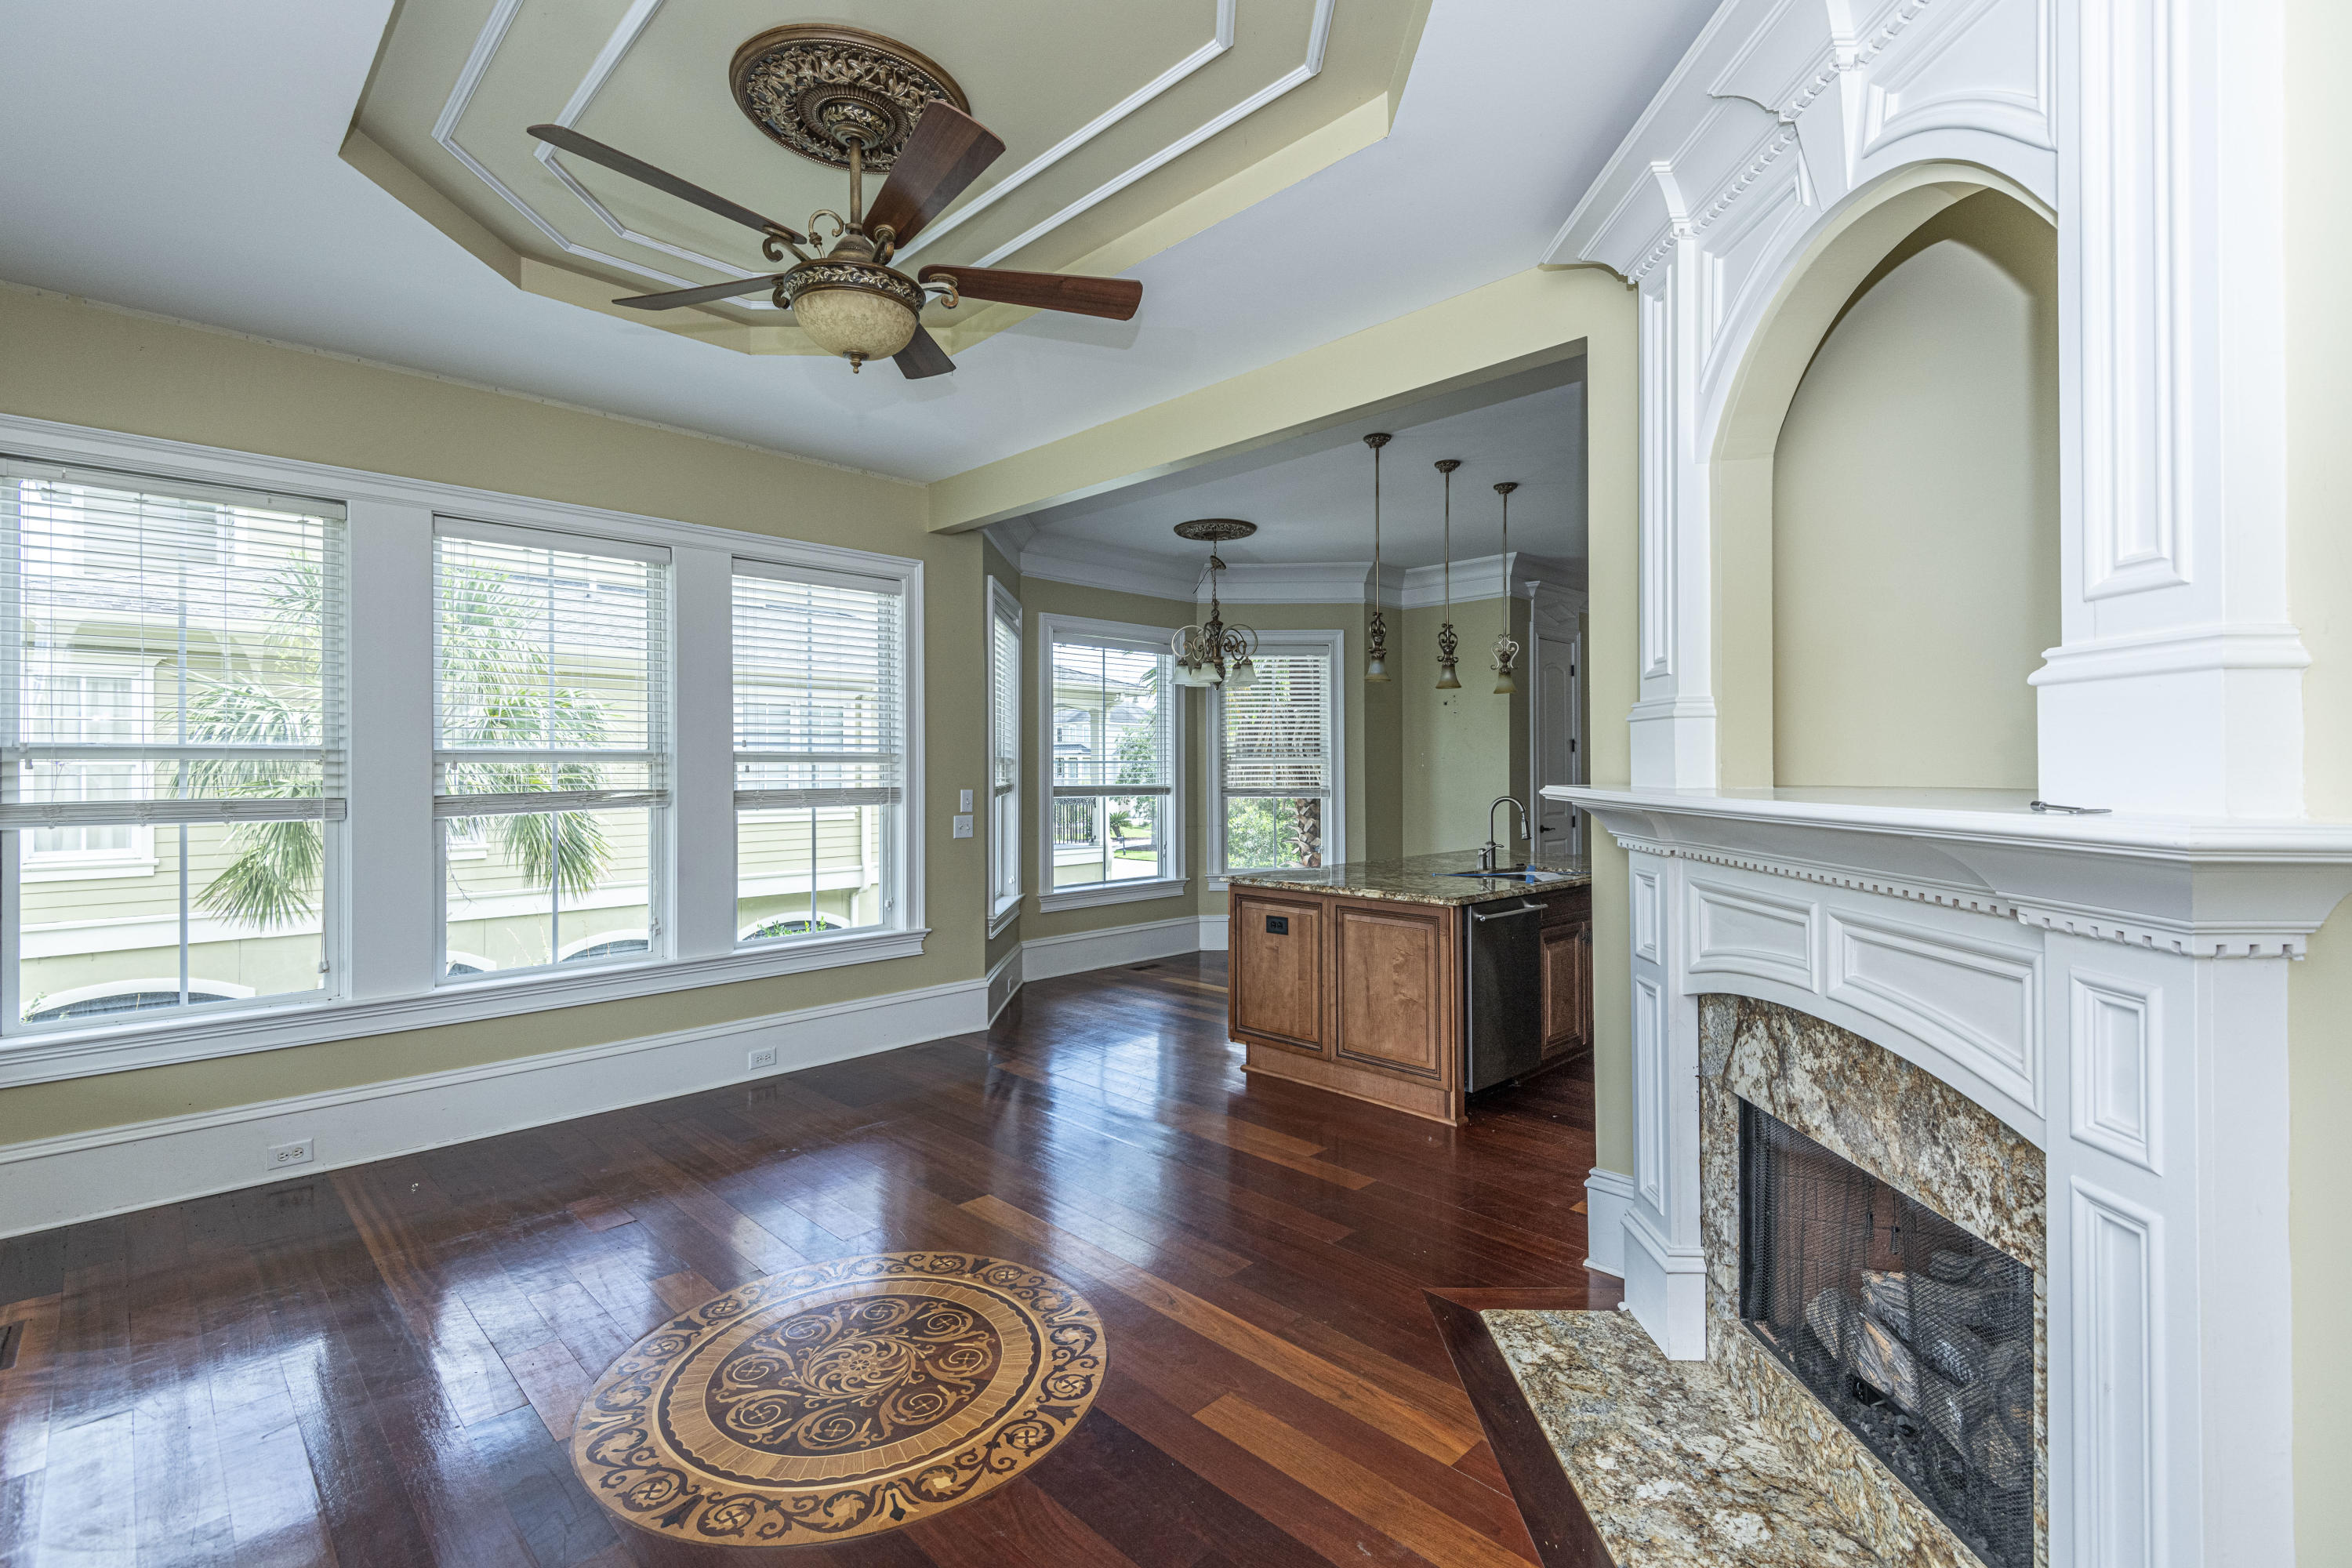 Rivertowne Country Club Homes For Sale - 1593 Rivertowne Country Club, Mount Pleasant, SC - 0